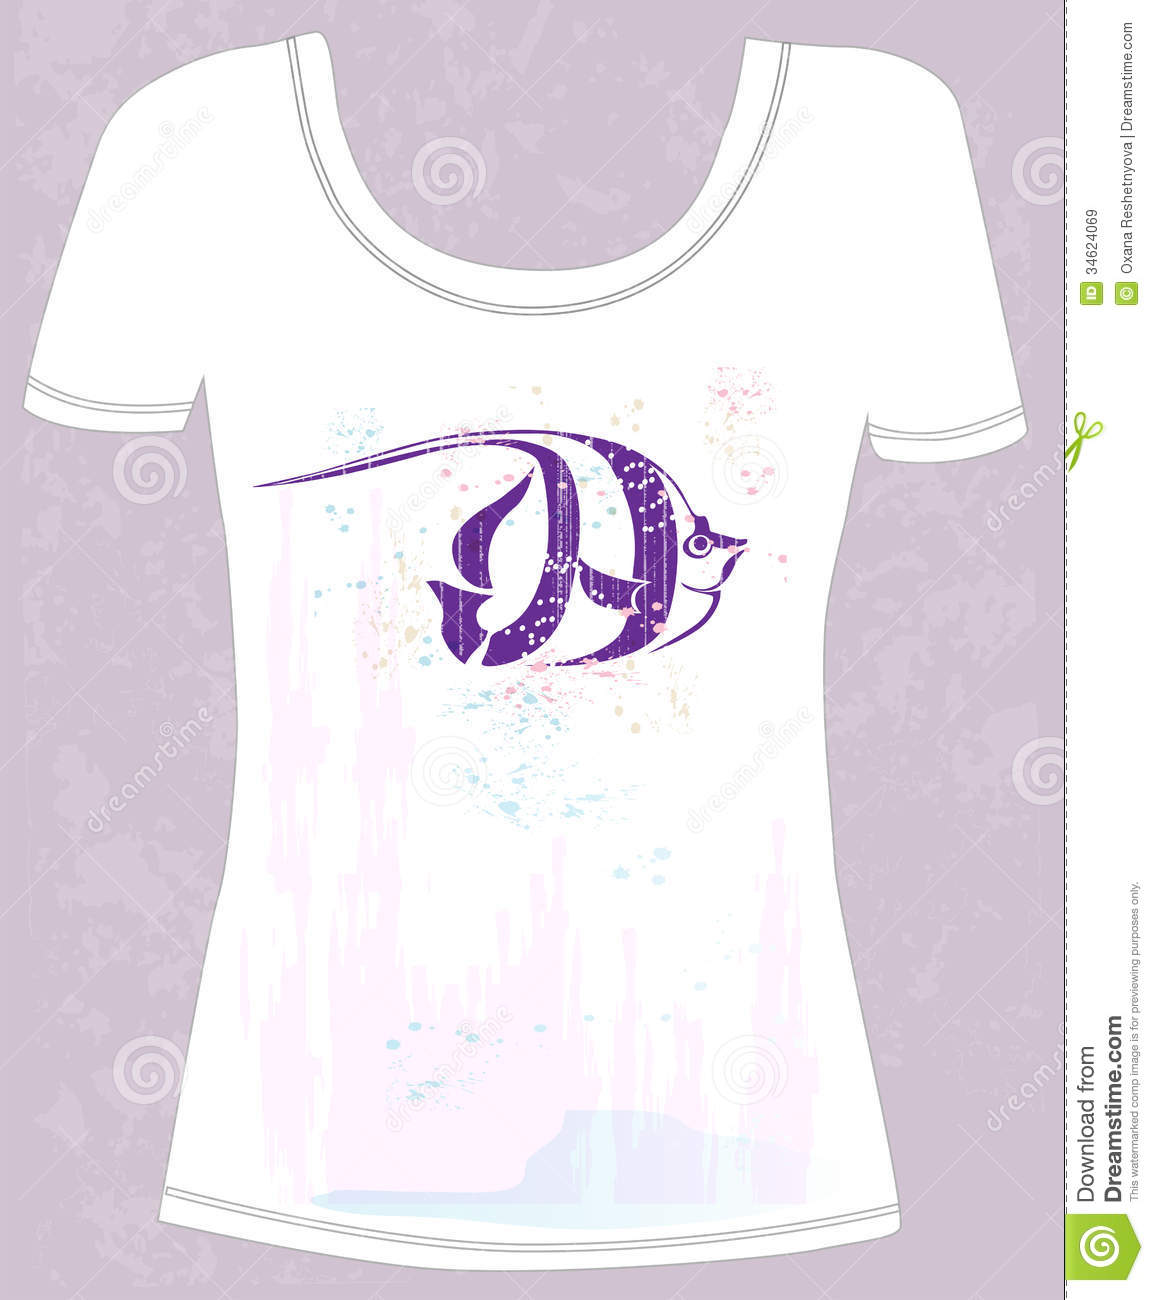 T shirt design stock vector image of natural printing for Stock t shirt designs